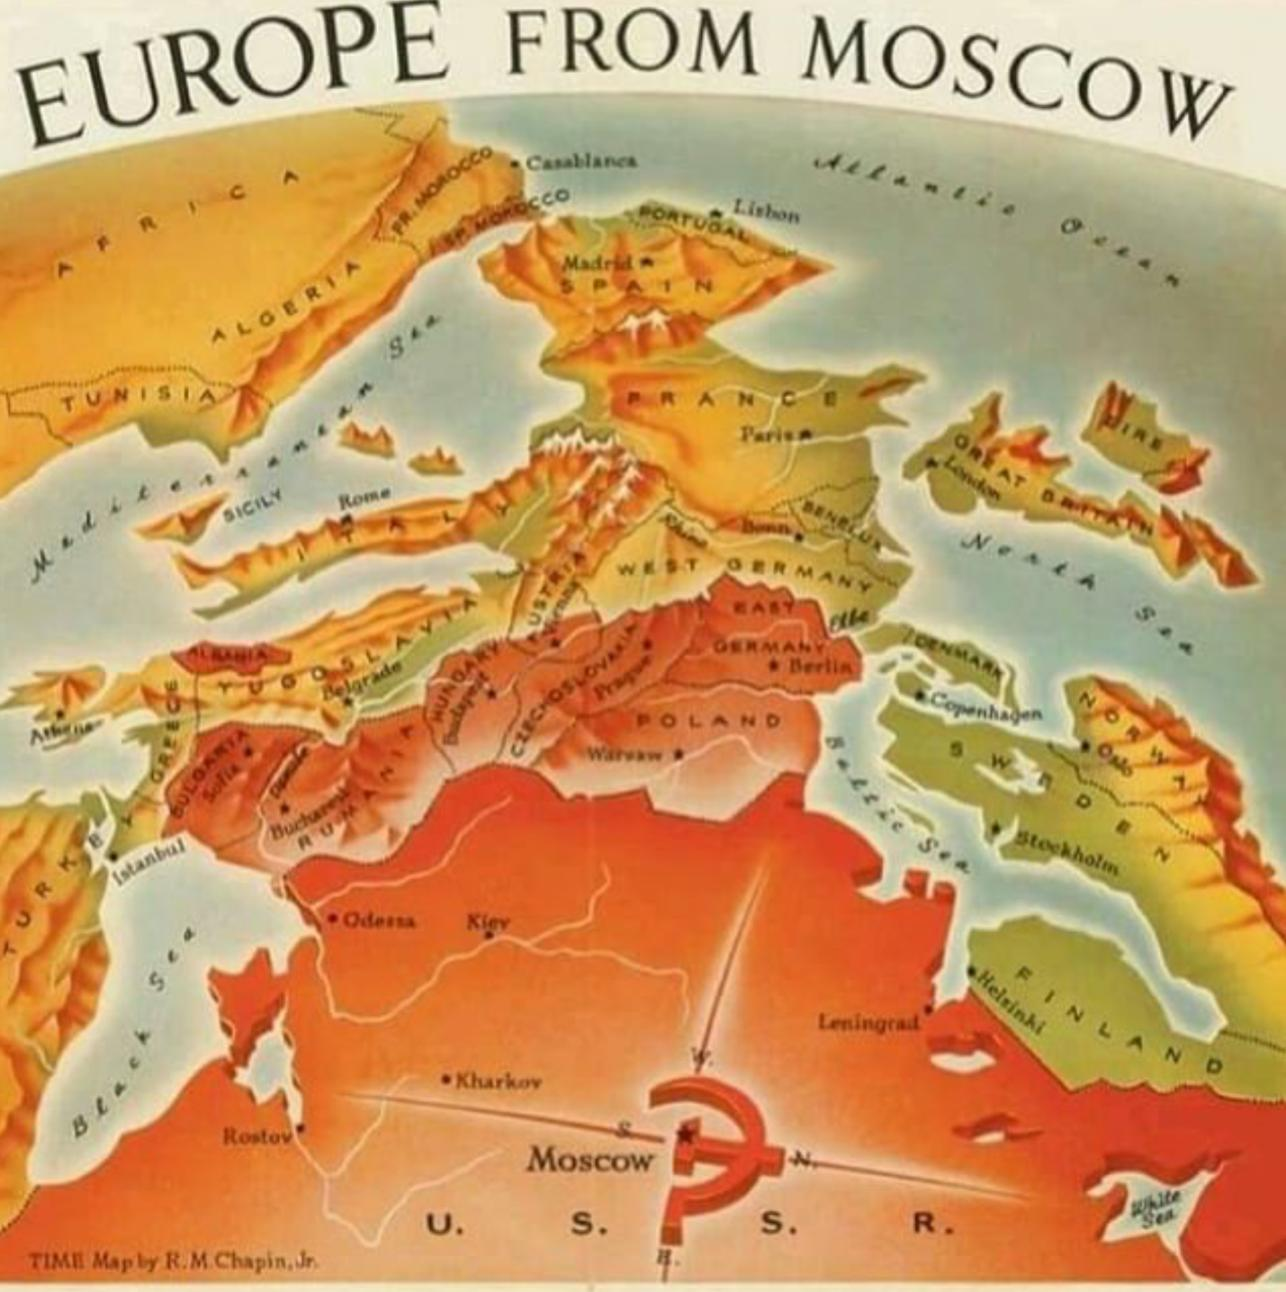 Europe from Moscow in the Cold War